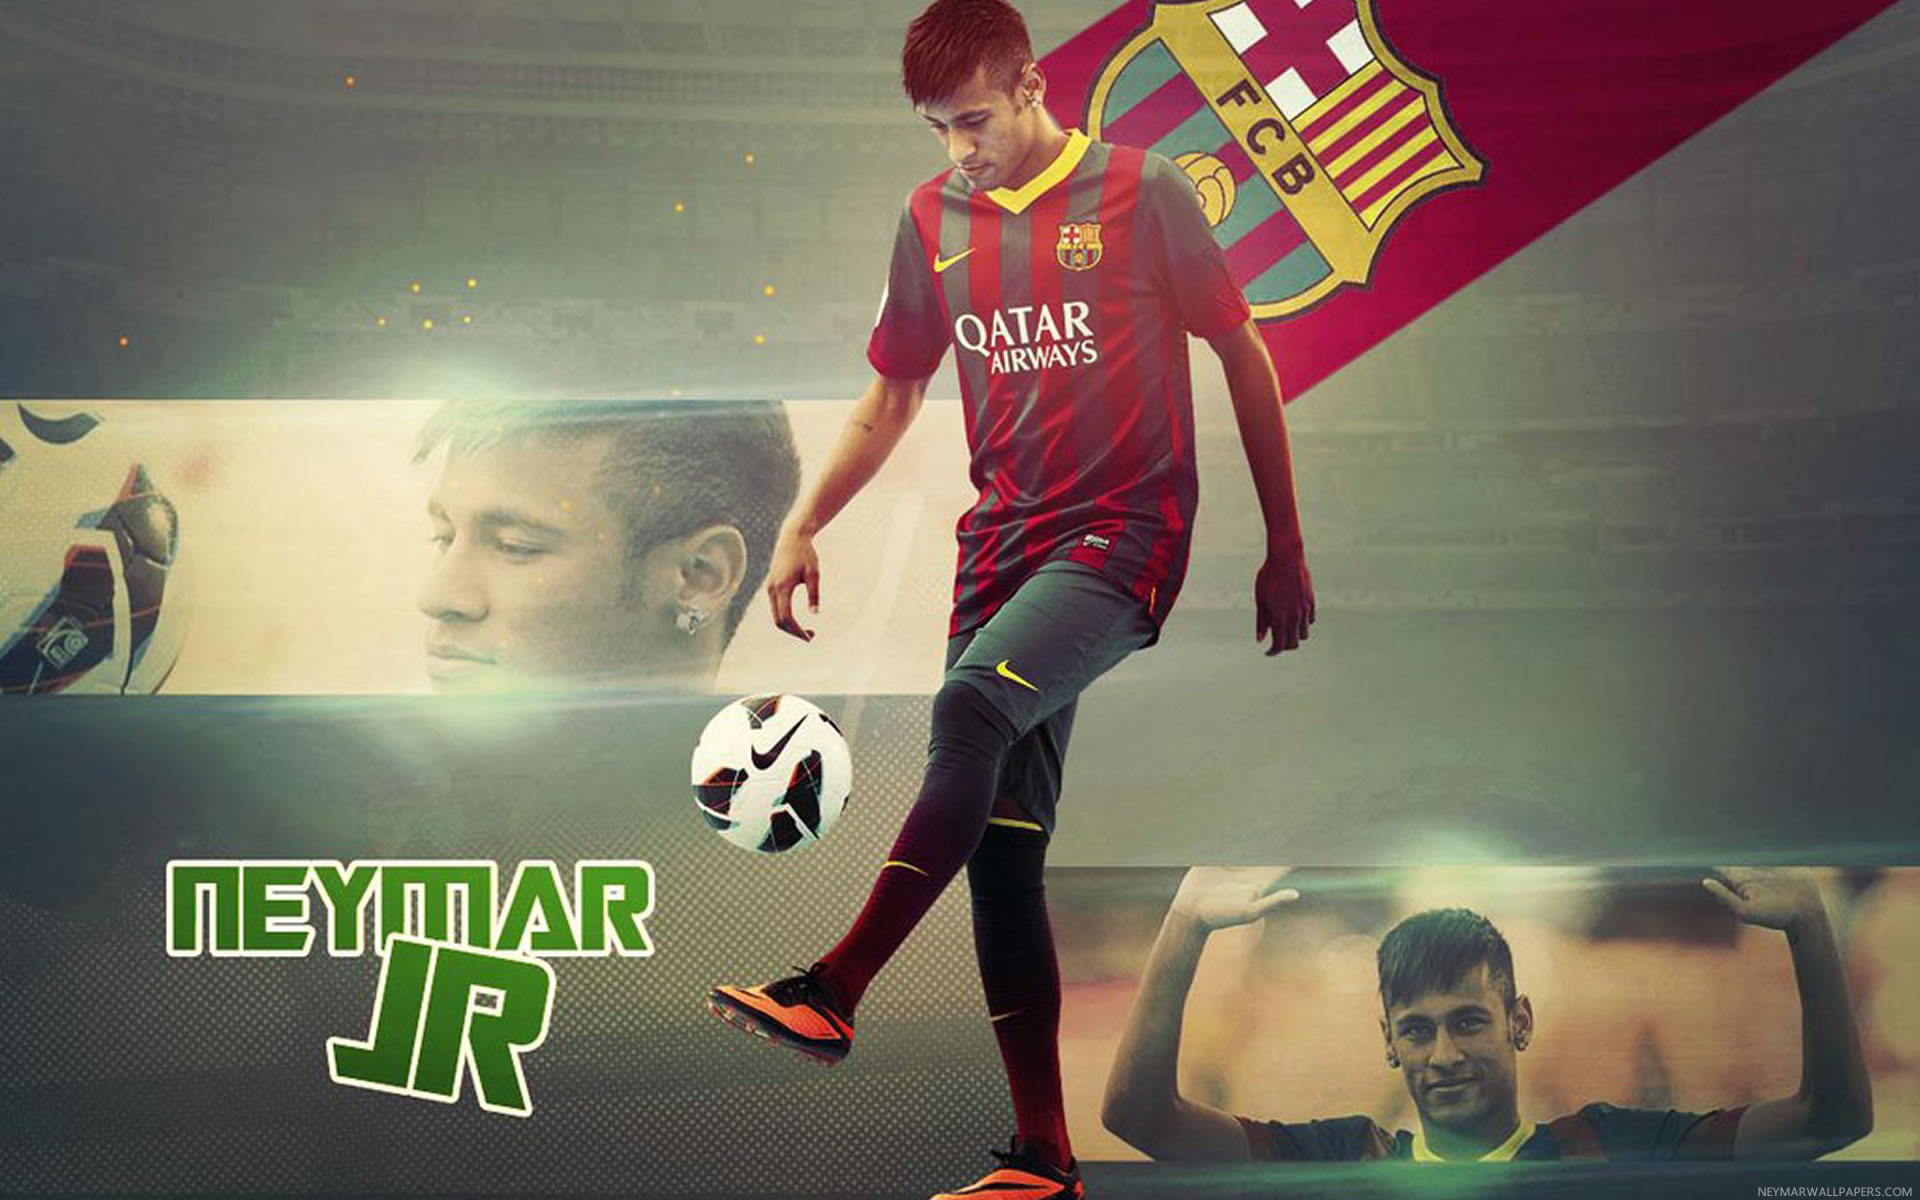 Hd wallpaper neymar - Neymar Training Wallpaper